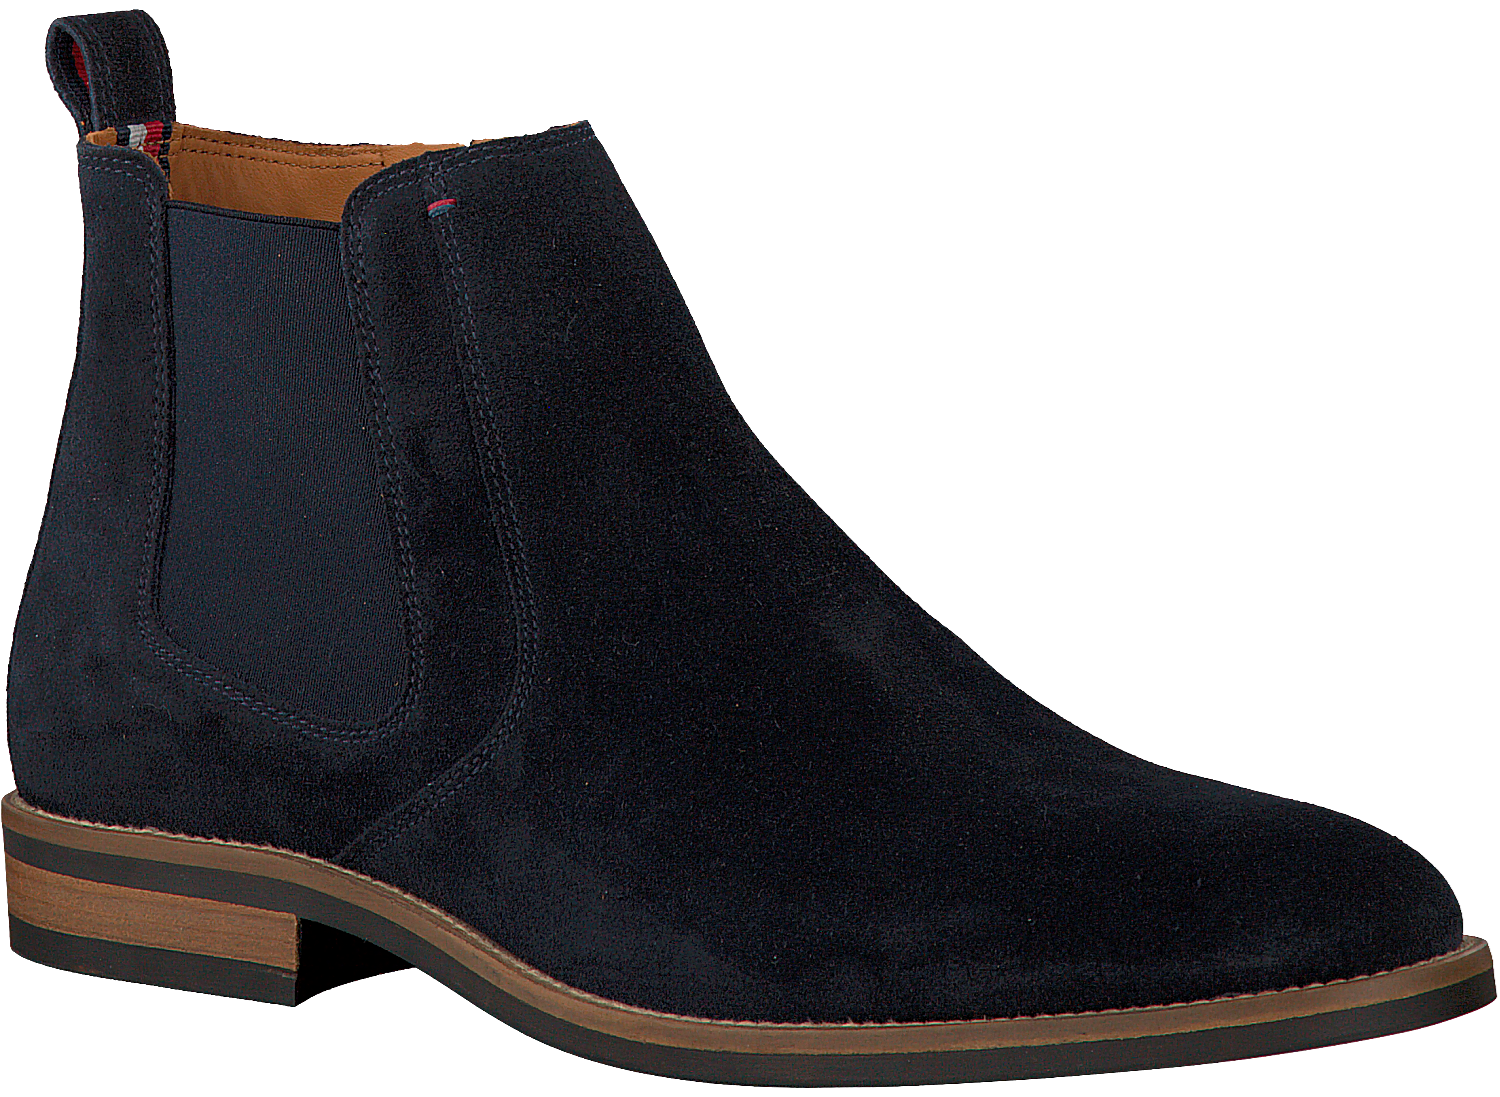 8dcd00d948a287 Blue TOMMY HILFIGER Chelsea boots DAYTONA 4B. TOMMY HILFIGER. -30%. Previous